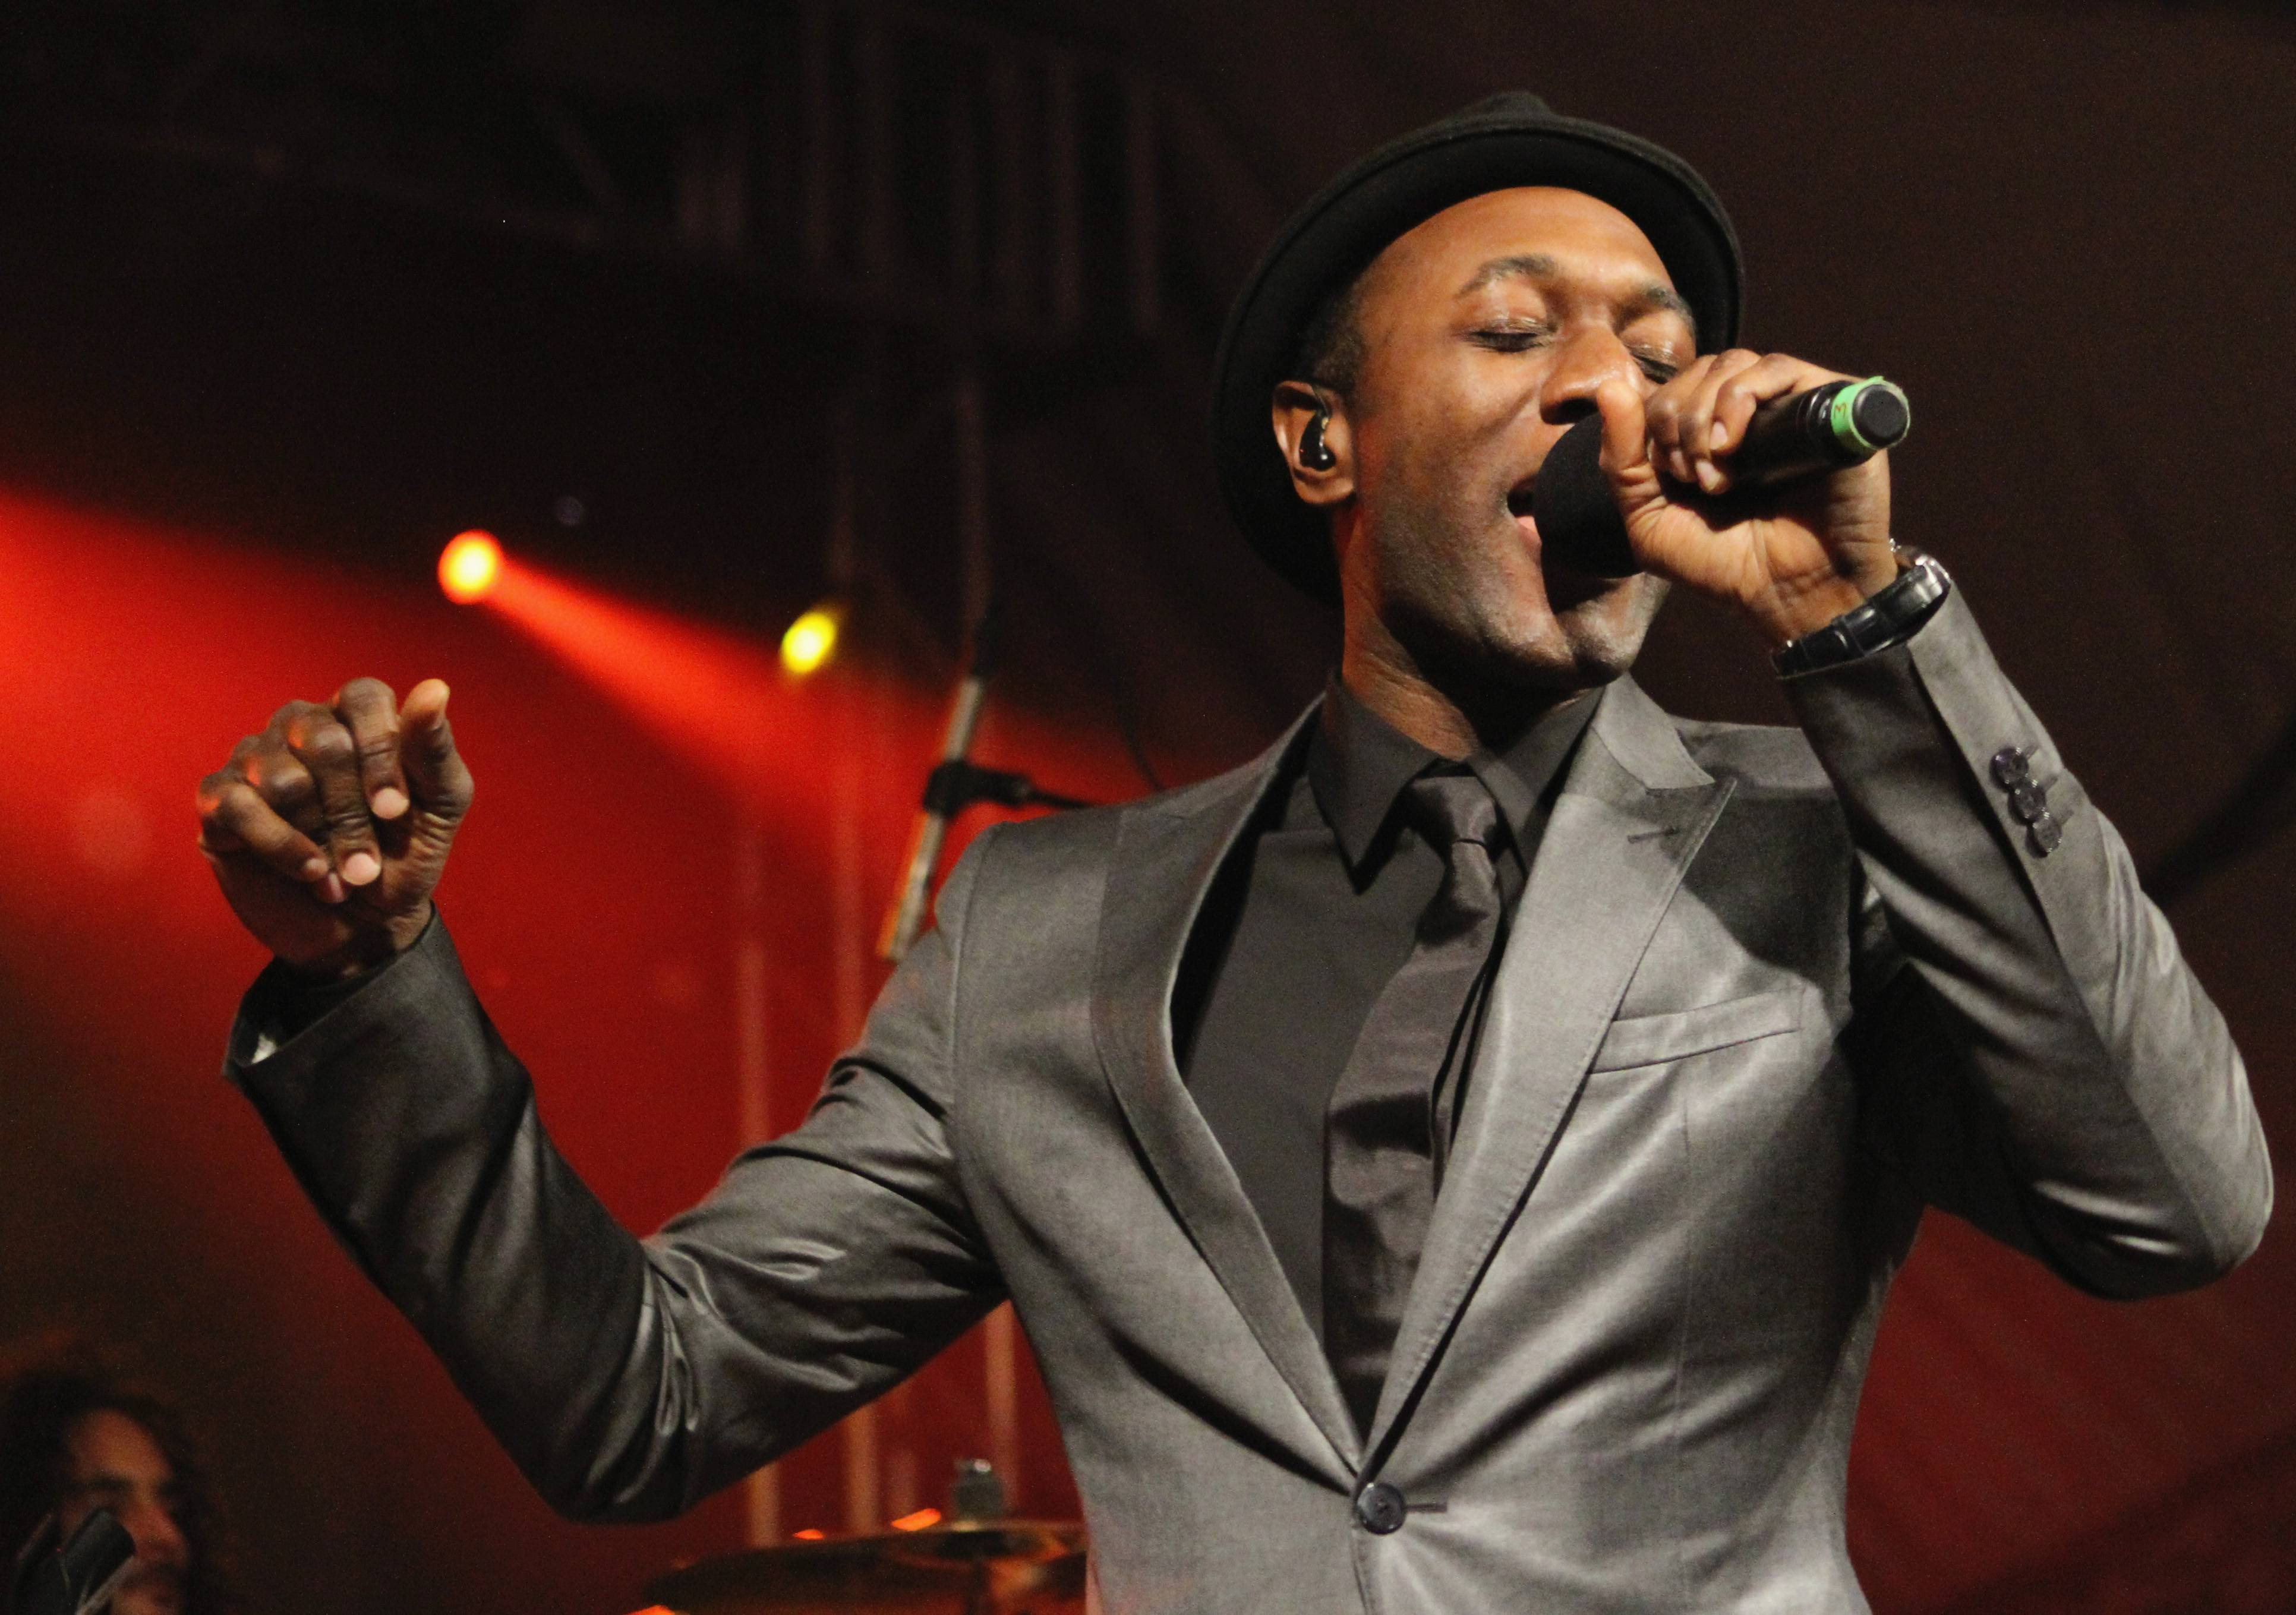 """Lifting Spirits - It never rains when Southern California crooner Aloe Blacc is on the mic. He performed several showcases, showing off his new song, """"The Man,"""" from his third studio album, Lift Your Spirit.(Photo: Travis P Ball/Getty Images for SXSW)"""